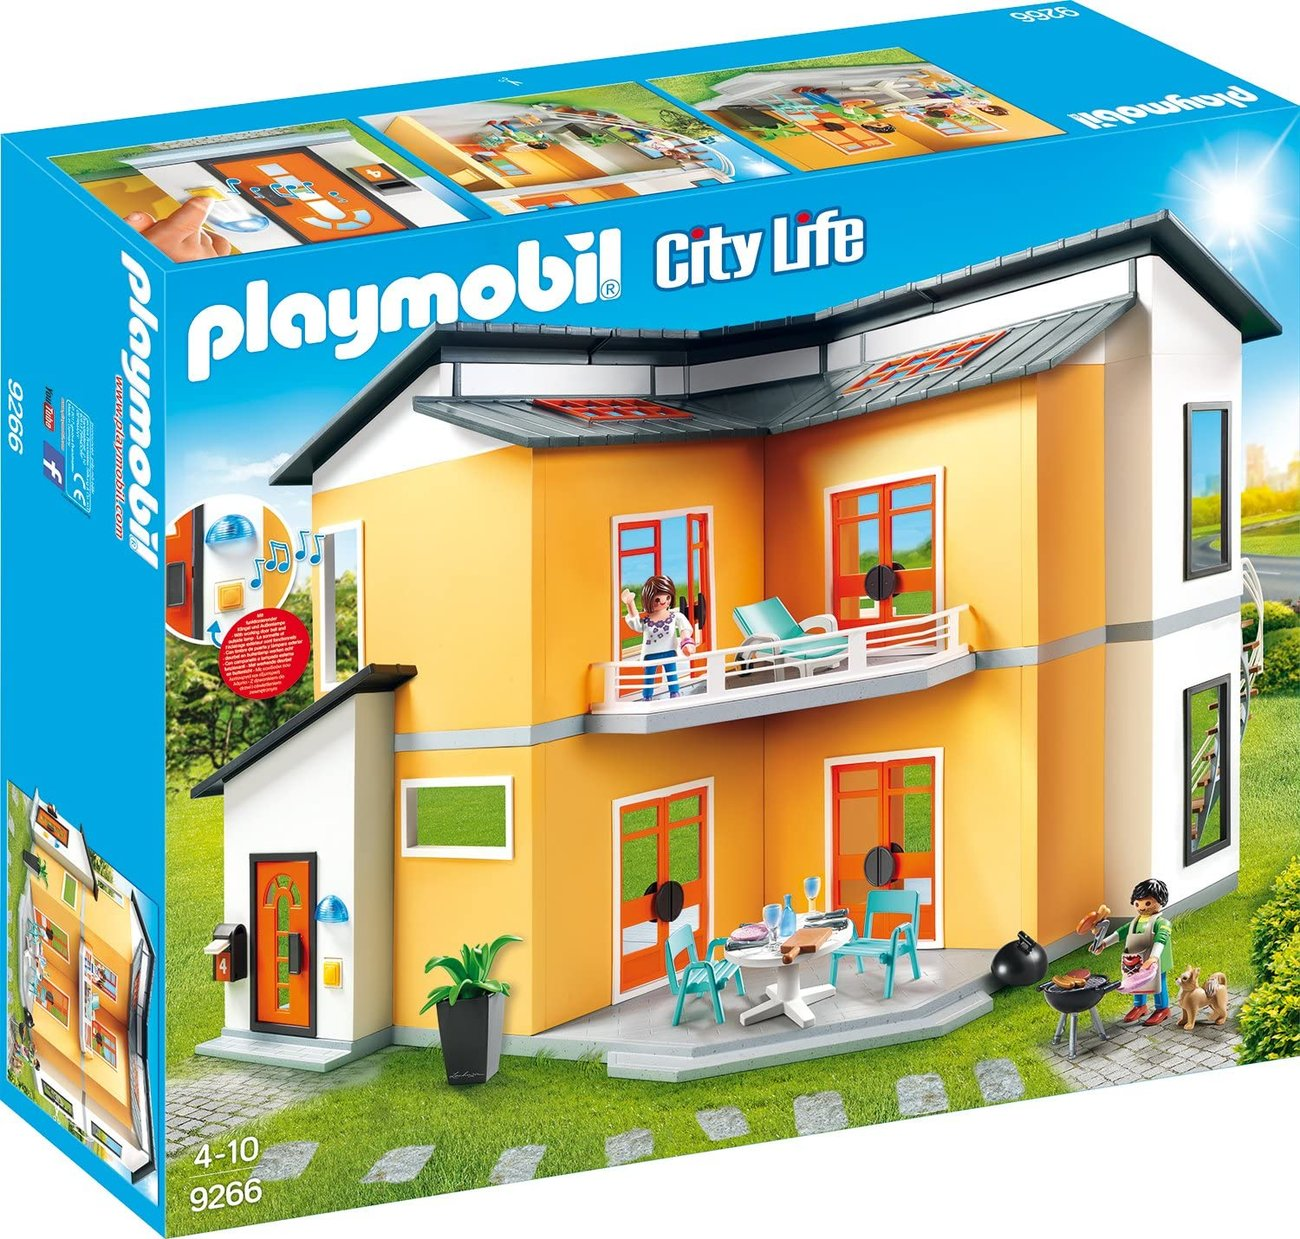 Playmobil City Life Haus